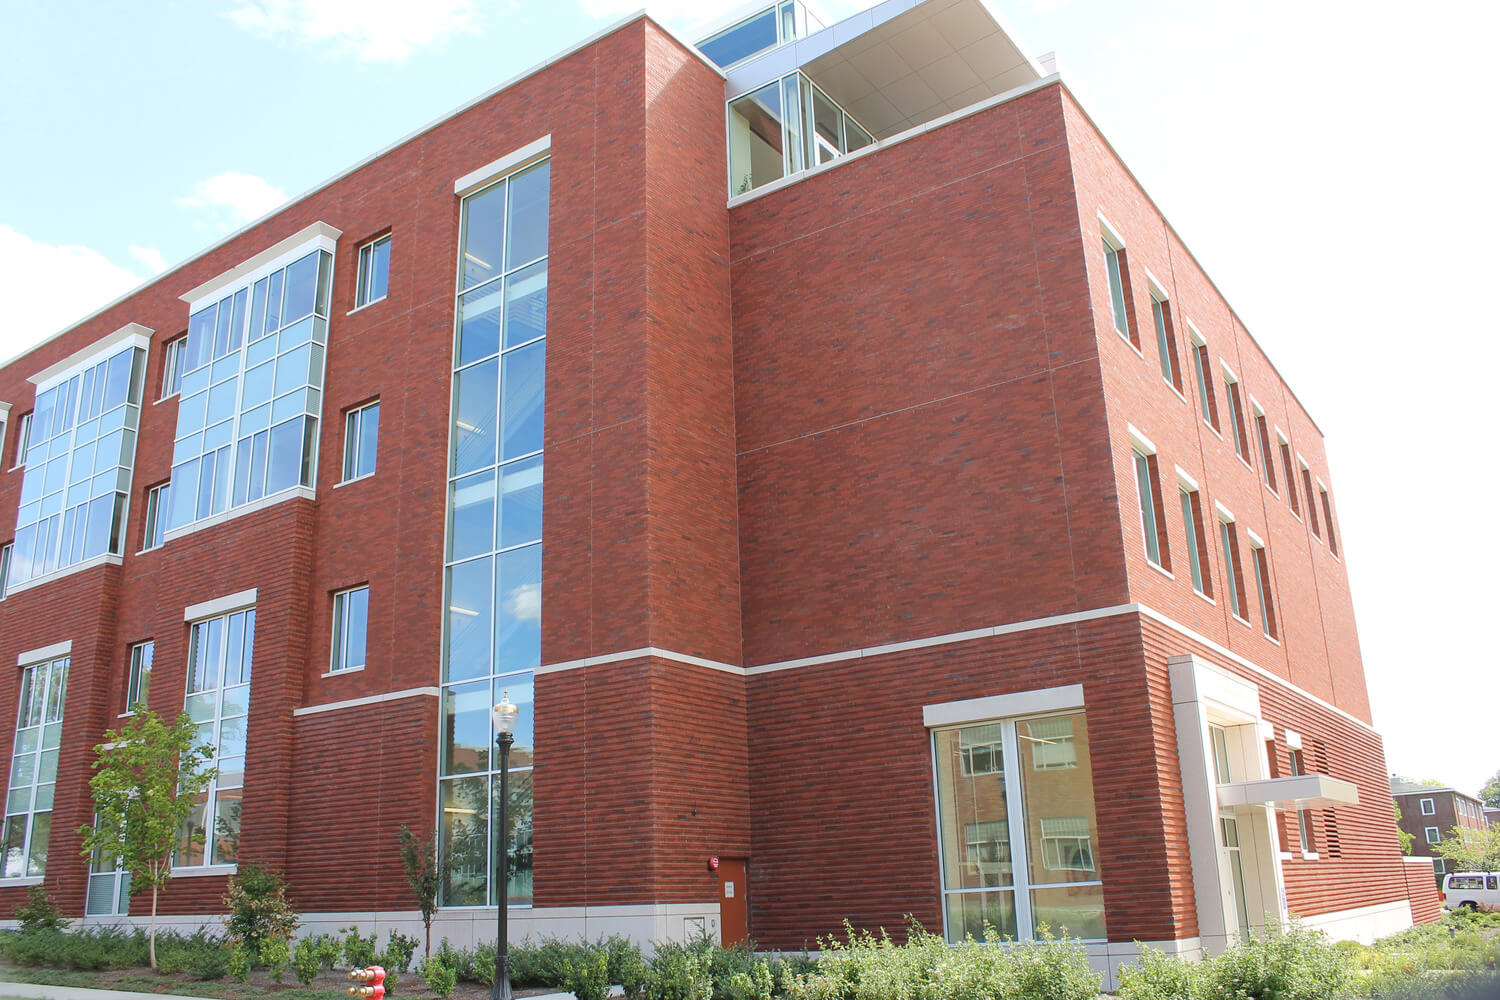 Featured projects masonry ceramic tile institute of oregon linus pauling science center dailygadgetfo Choice Image